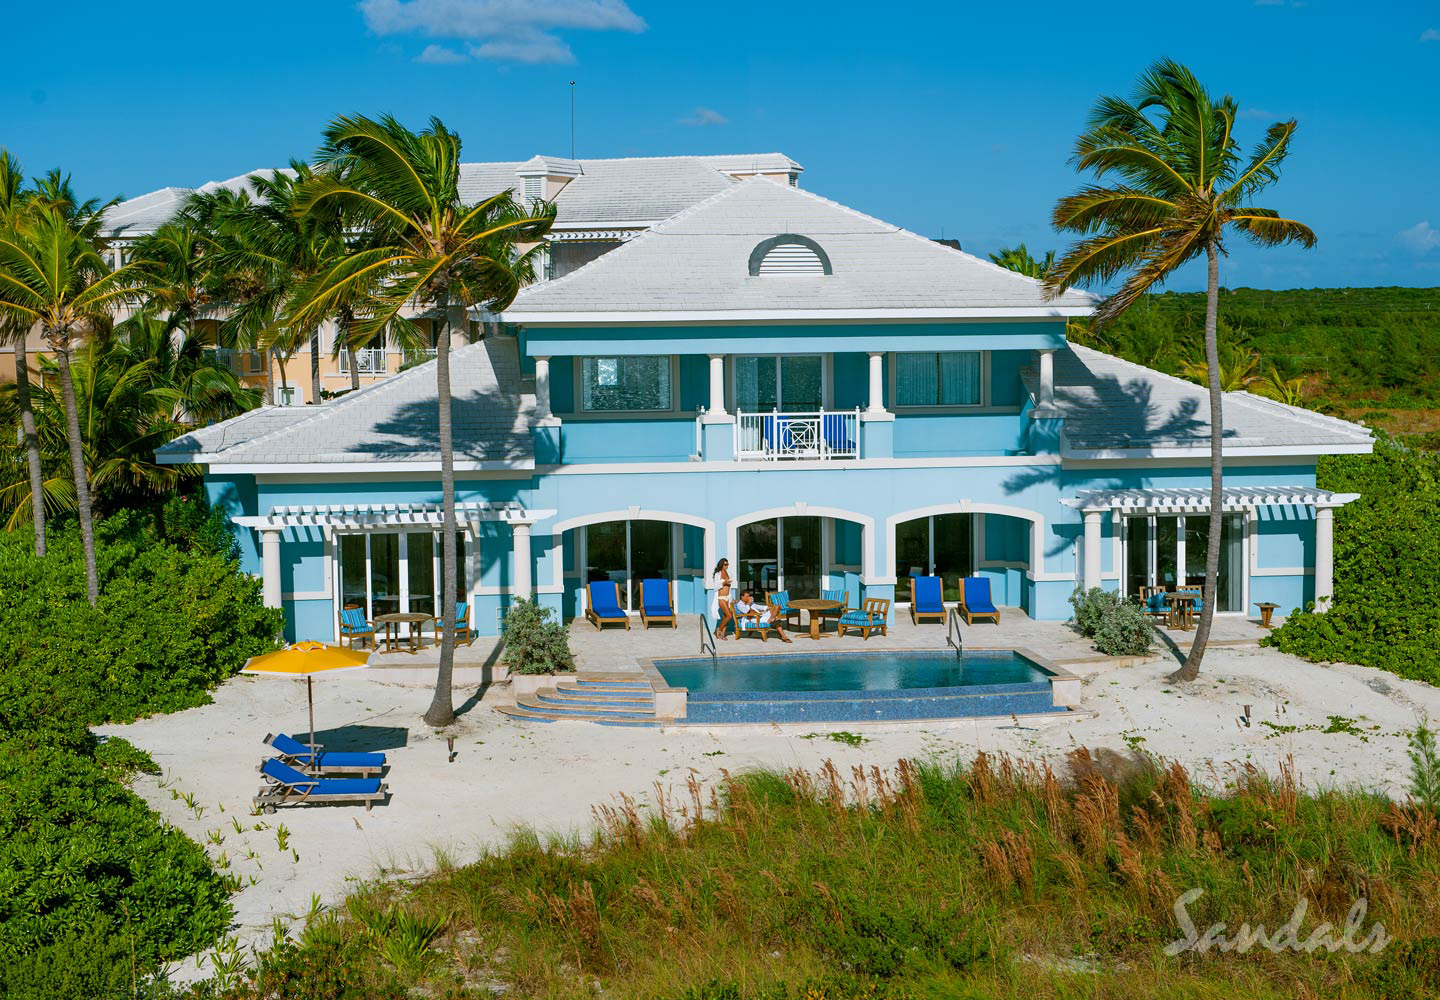 Travel Agency All-Inclusive Resort Sandals Emerald Bay 097